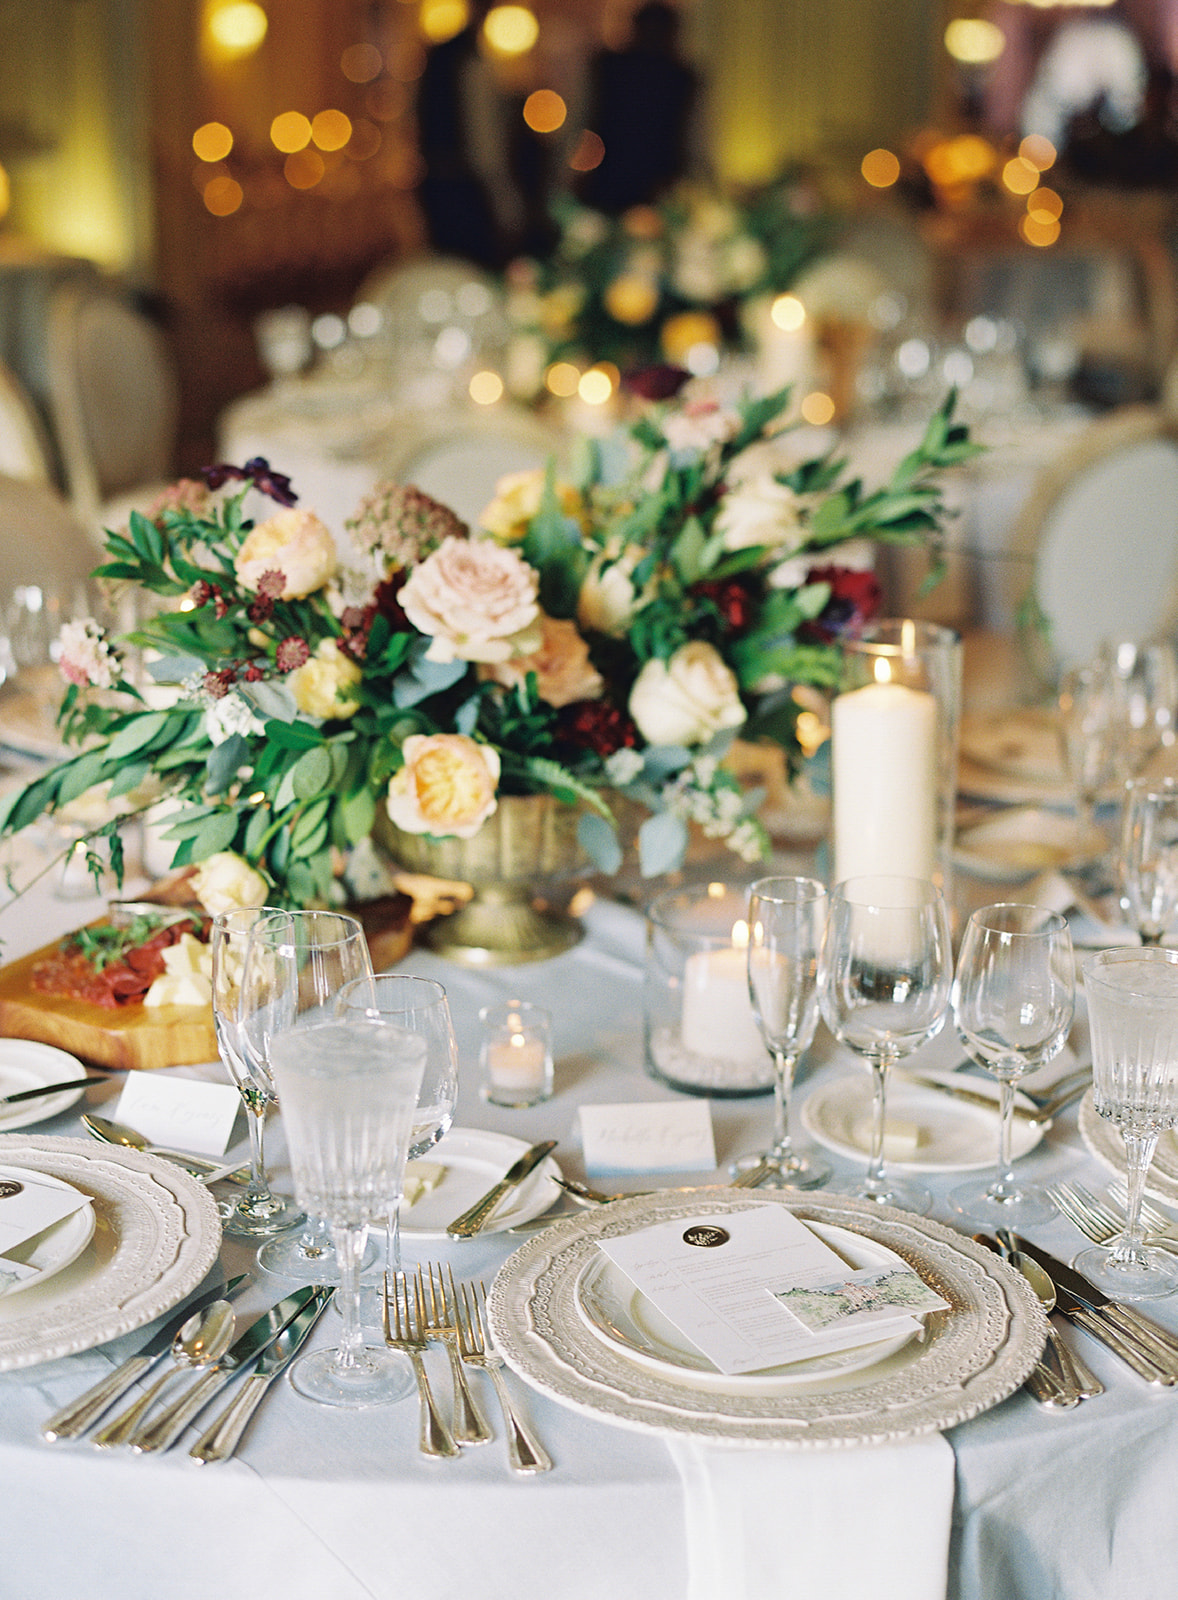 close-up of place settings and floral centerpieces